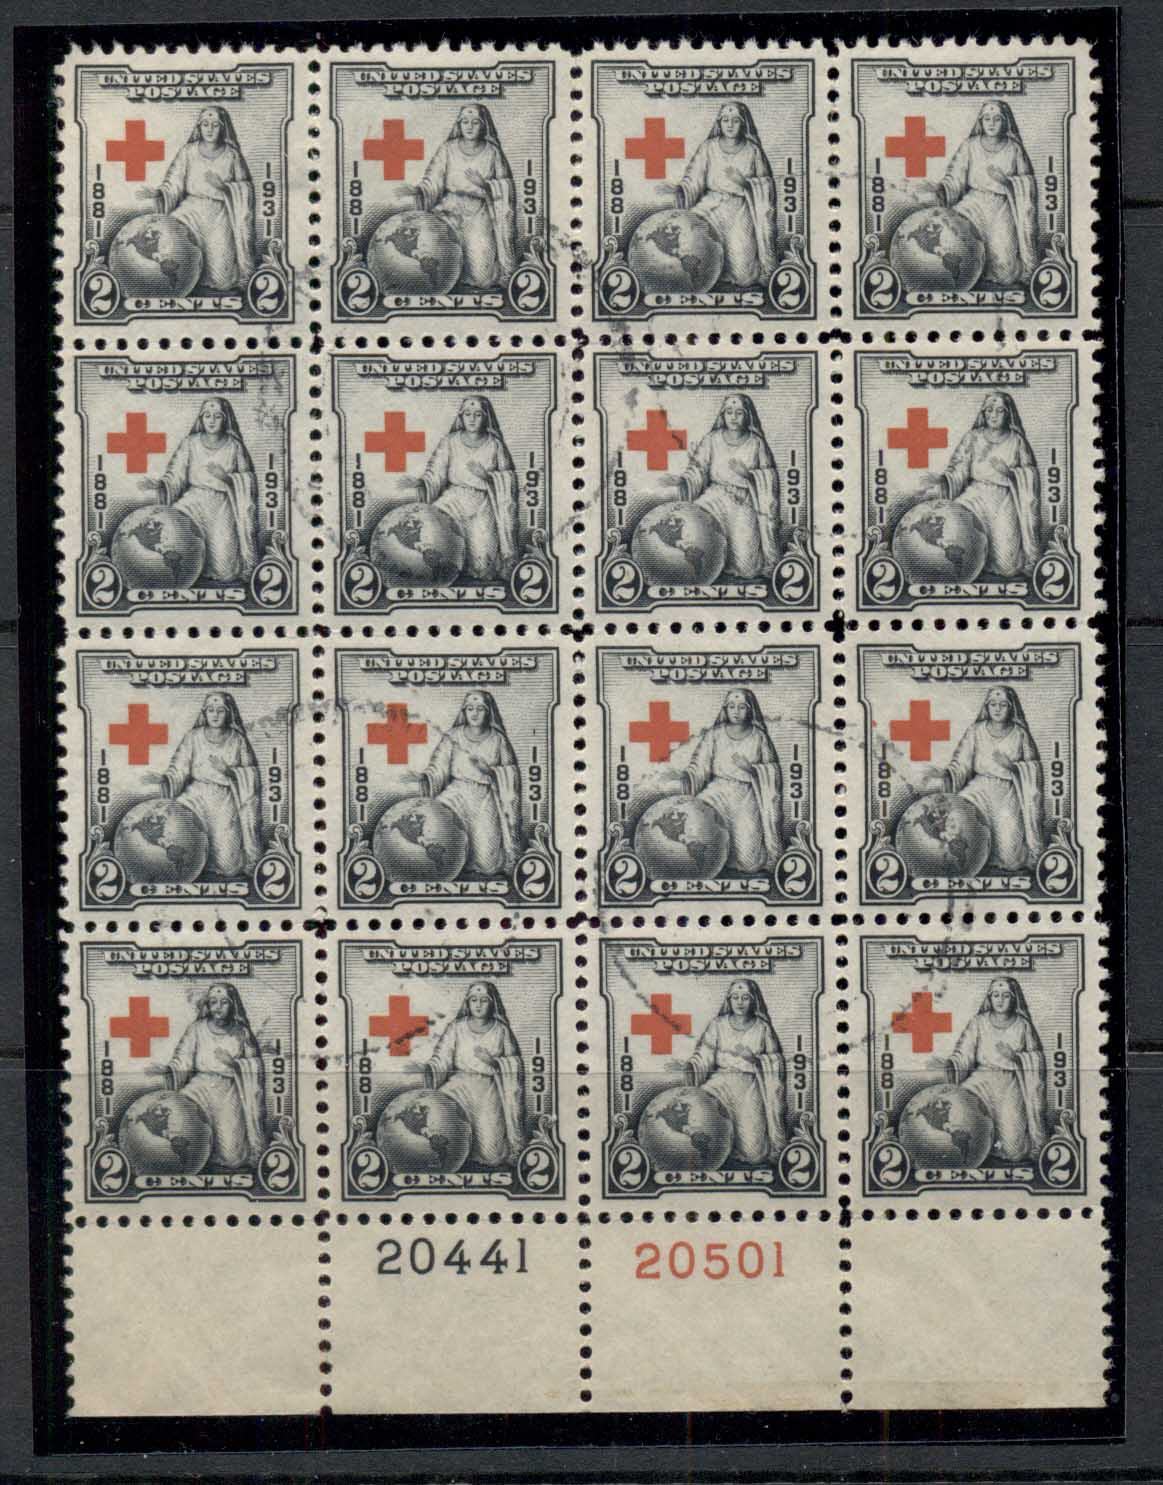 USA 1931 Sc#702 Red Cross PB#20441/20501 blk 16 FU